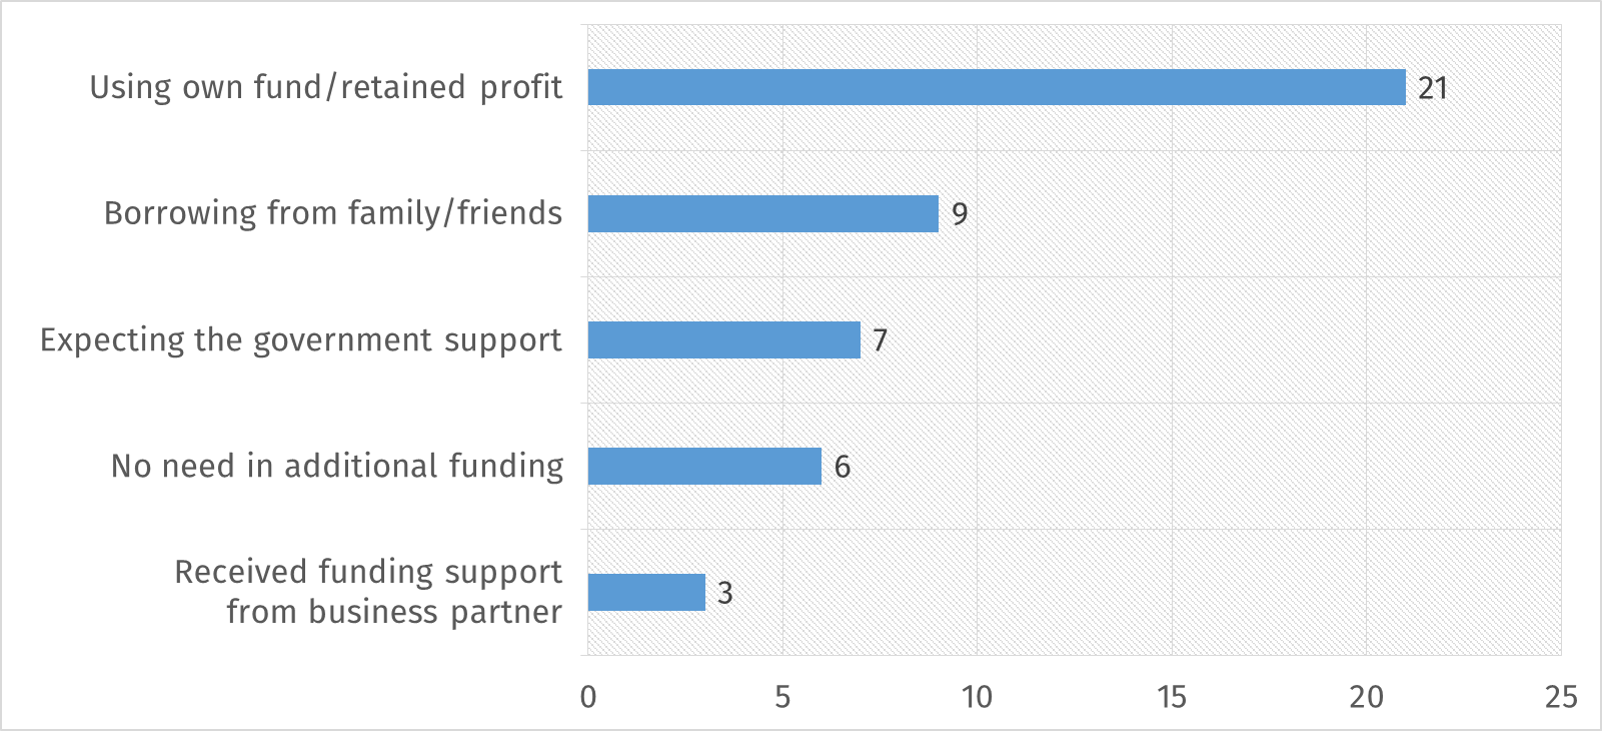 Top 5 funding conditions preferred by businesses during COVID crisis (multiple choice)